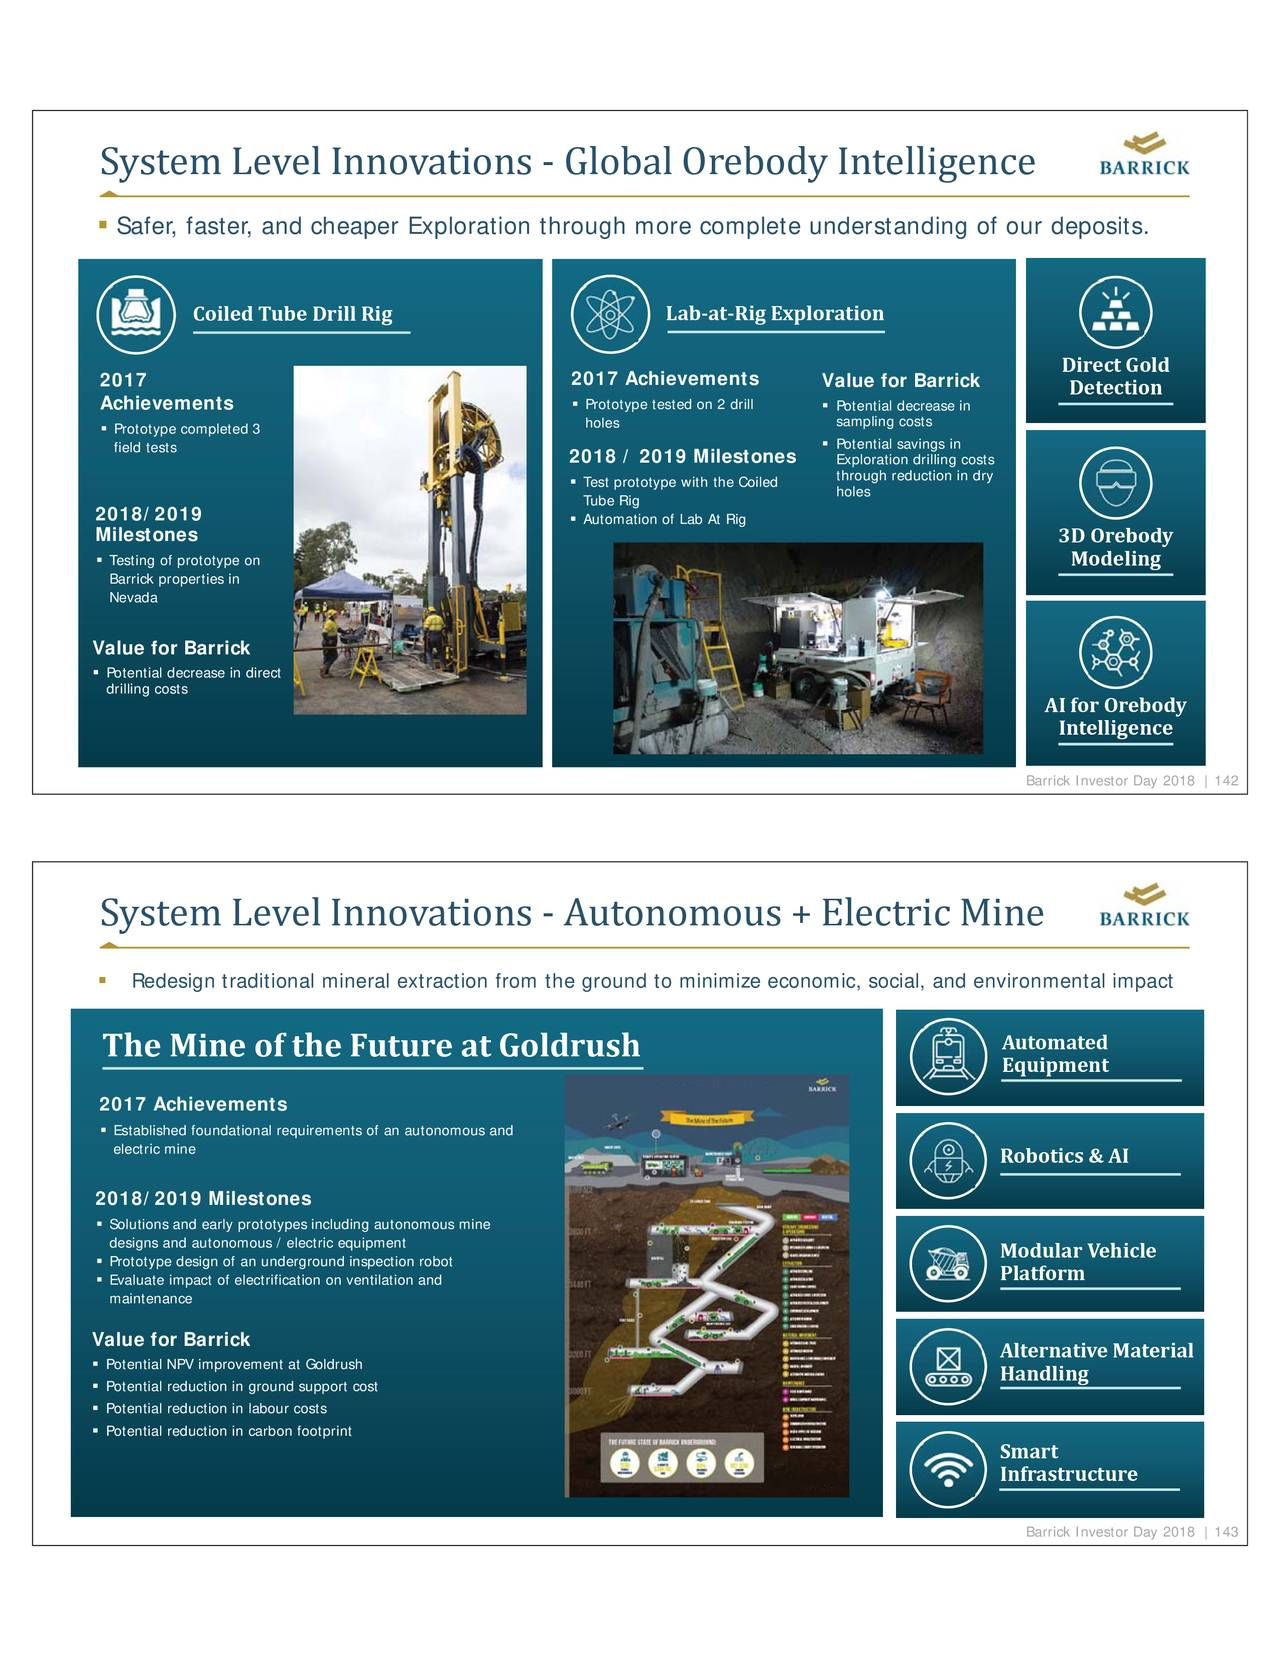 barrick gold field report Integrated annual reports - gold fields - corporate webite - our vision is to be the global leader in sustainable gold mining.